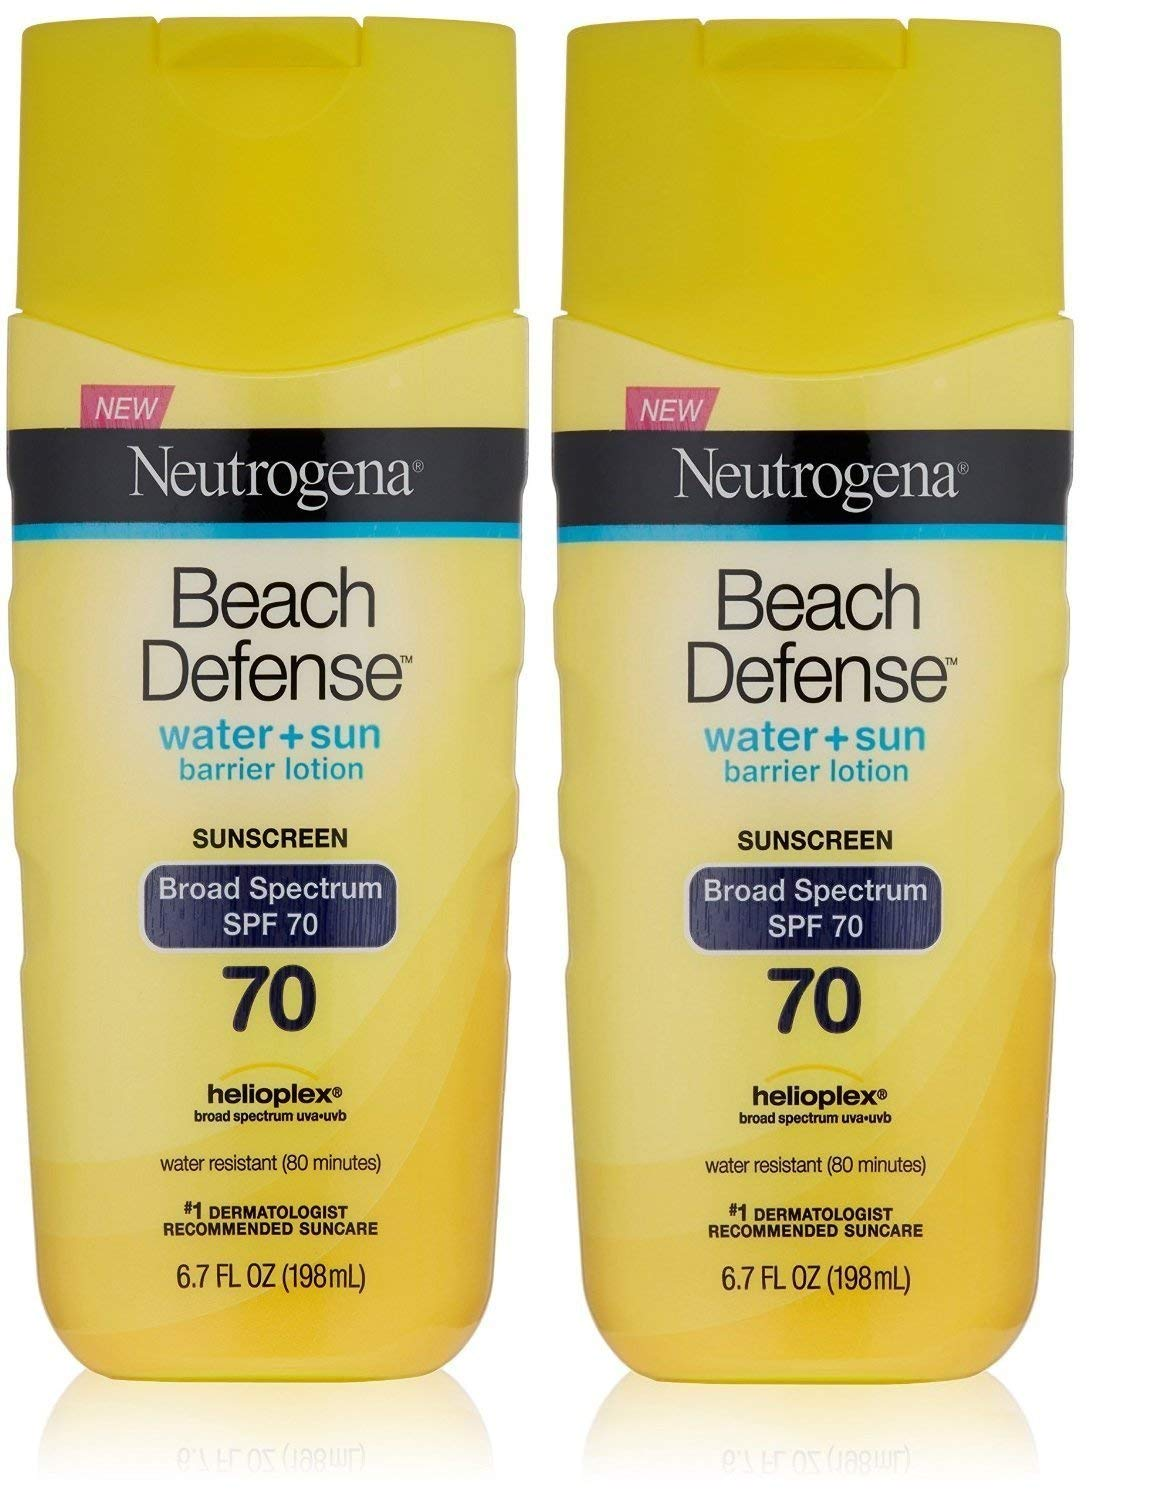 Neutrogena Beach Defense Sunscreen Lotion with Broad Spectrum SPF 70 Protection, 6.7 Ounce (Pack of 2)